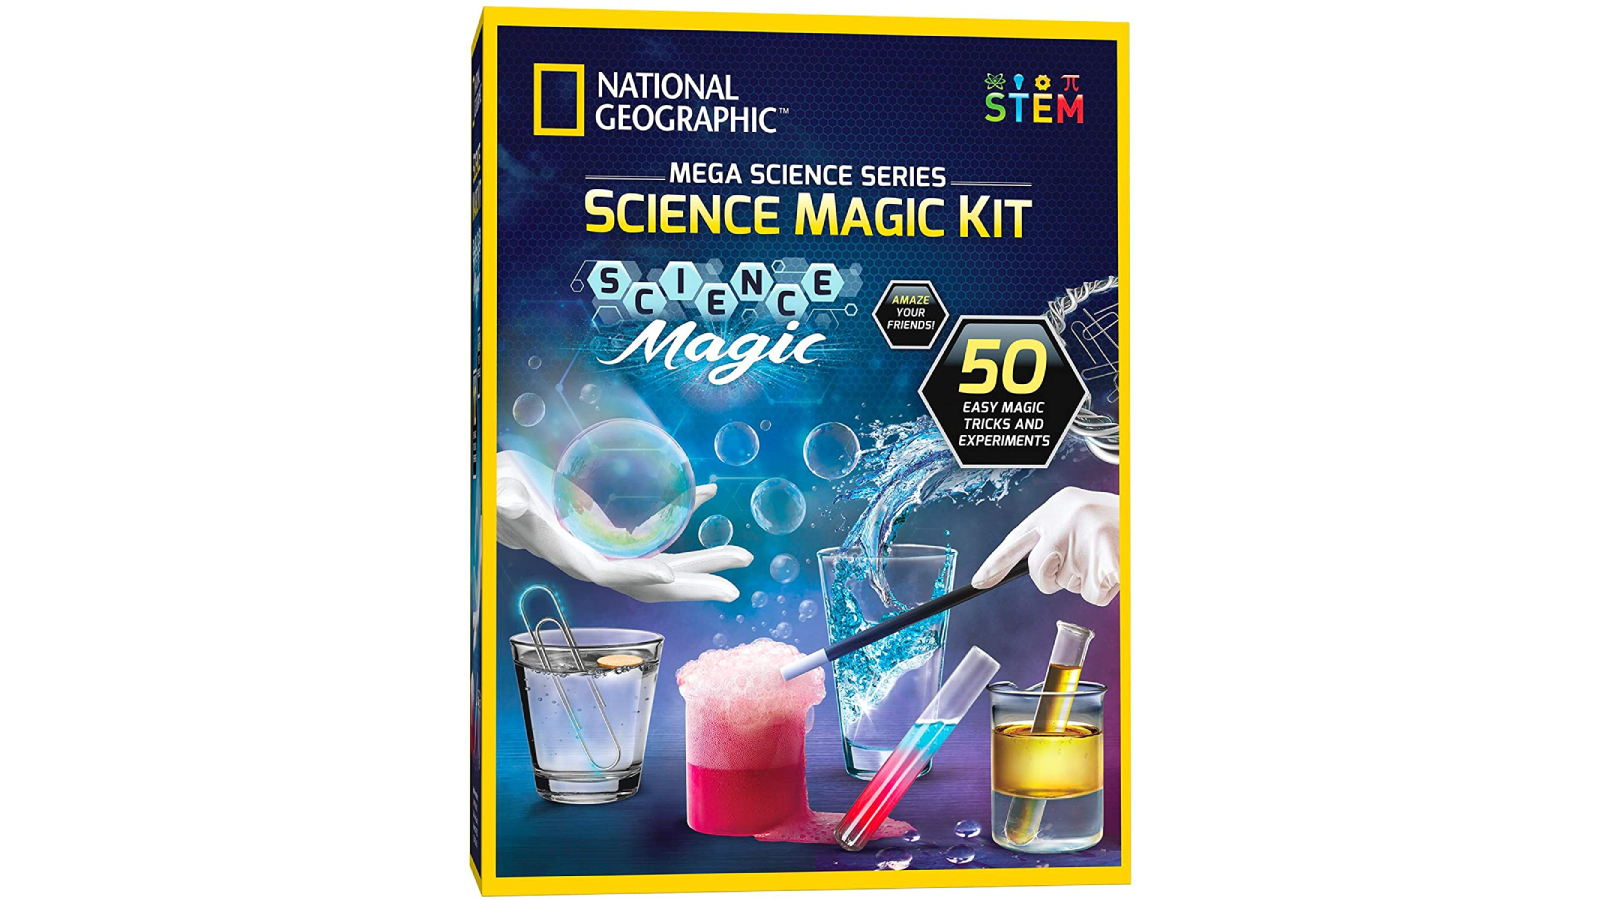 National Geographic product box showing a pair of hands conducting science experiments.